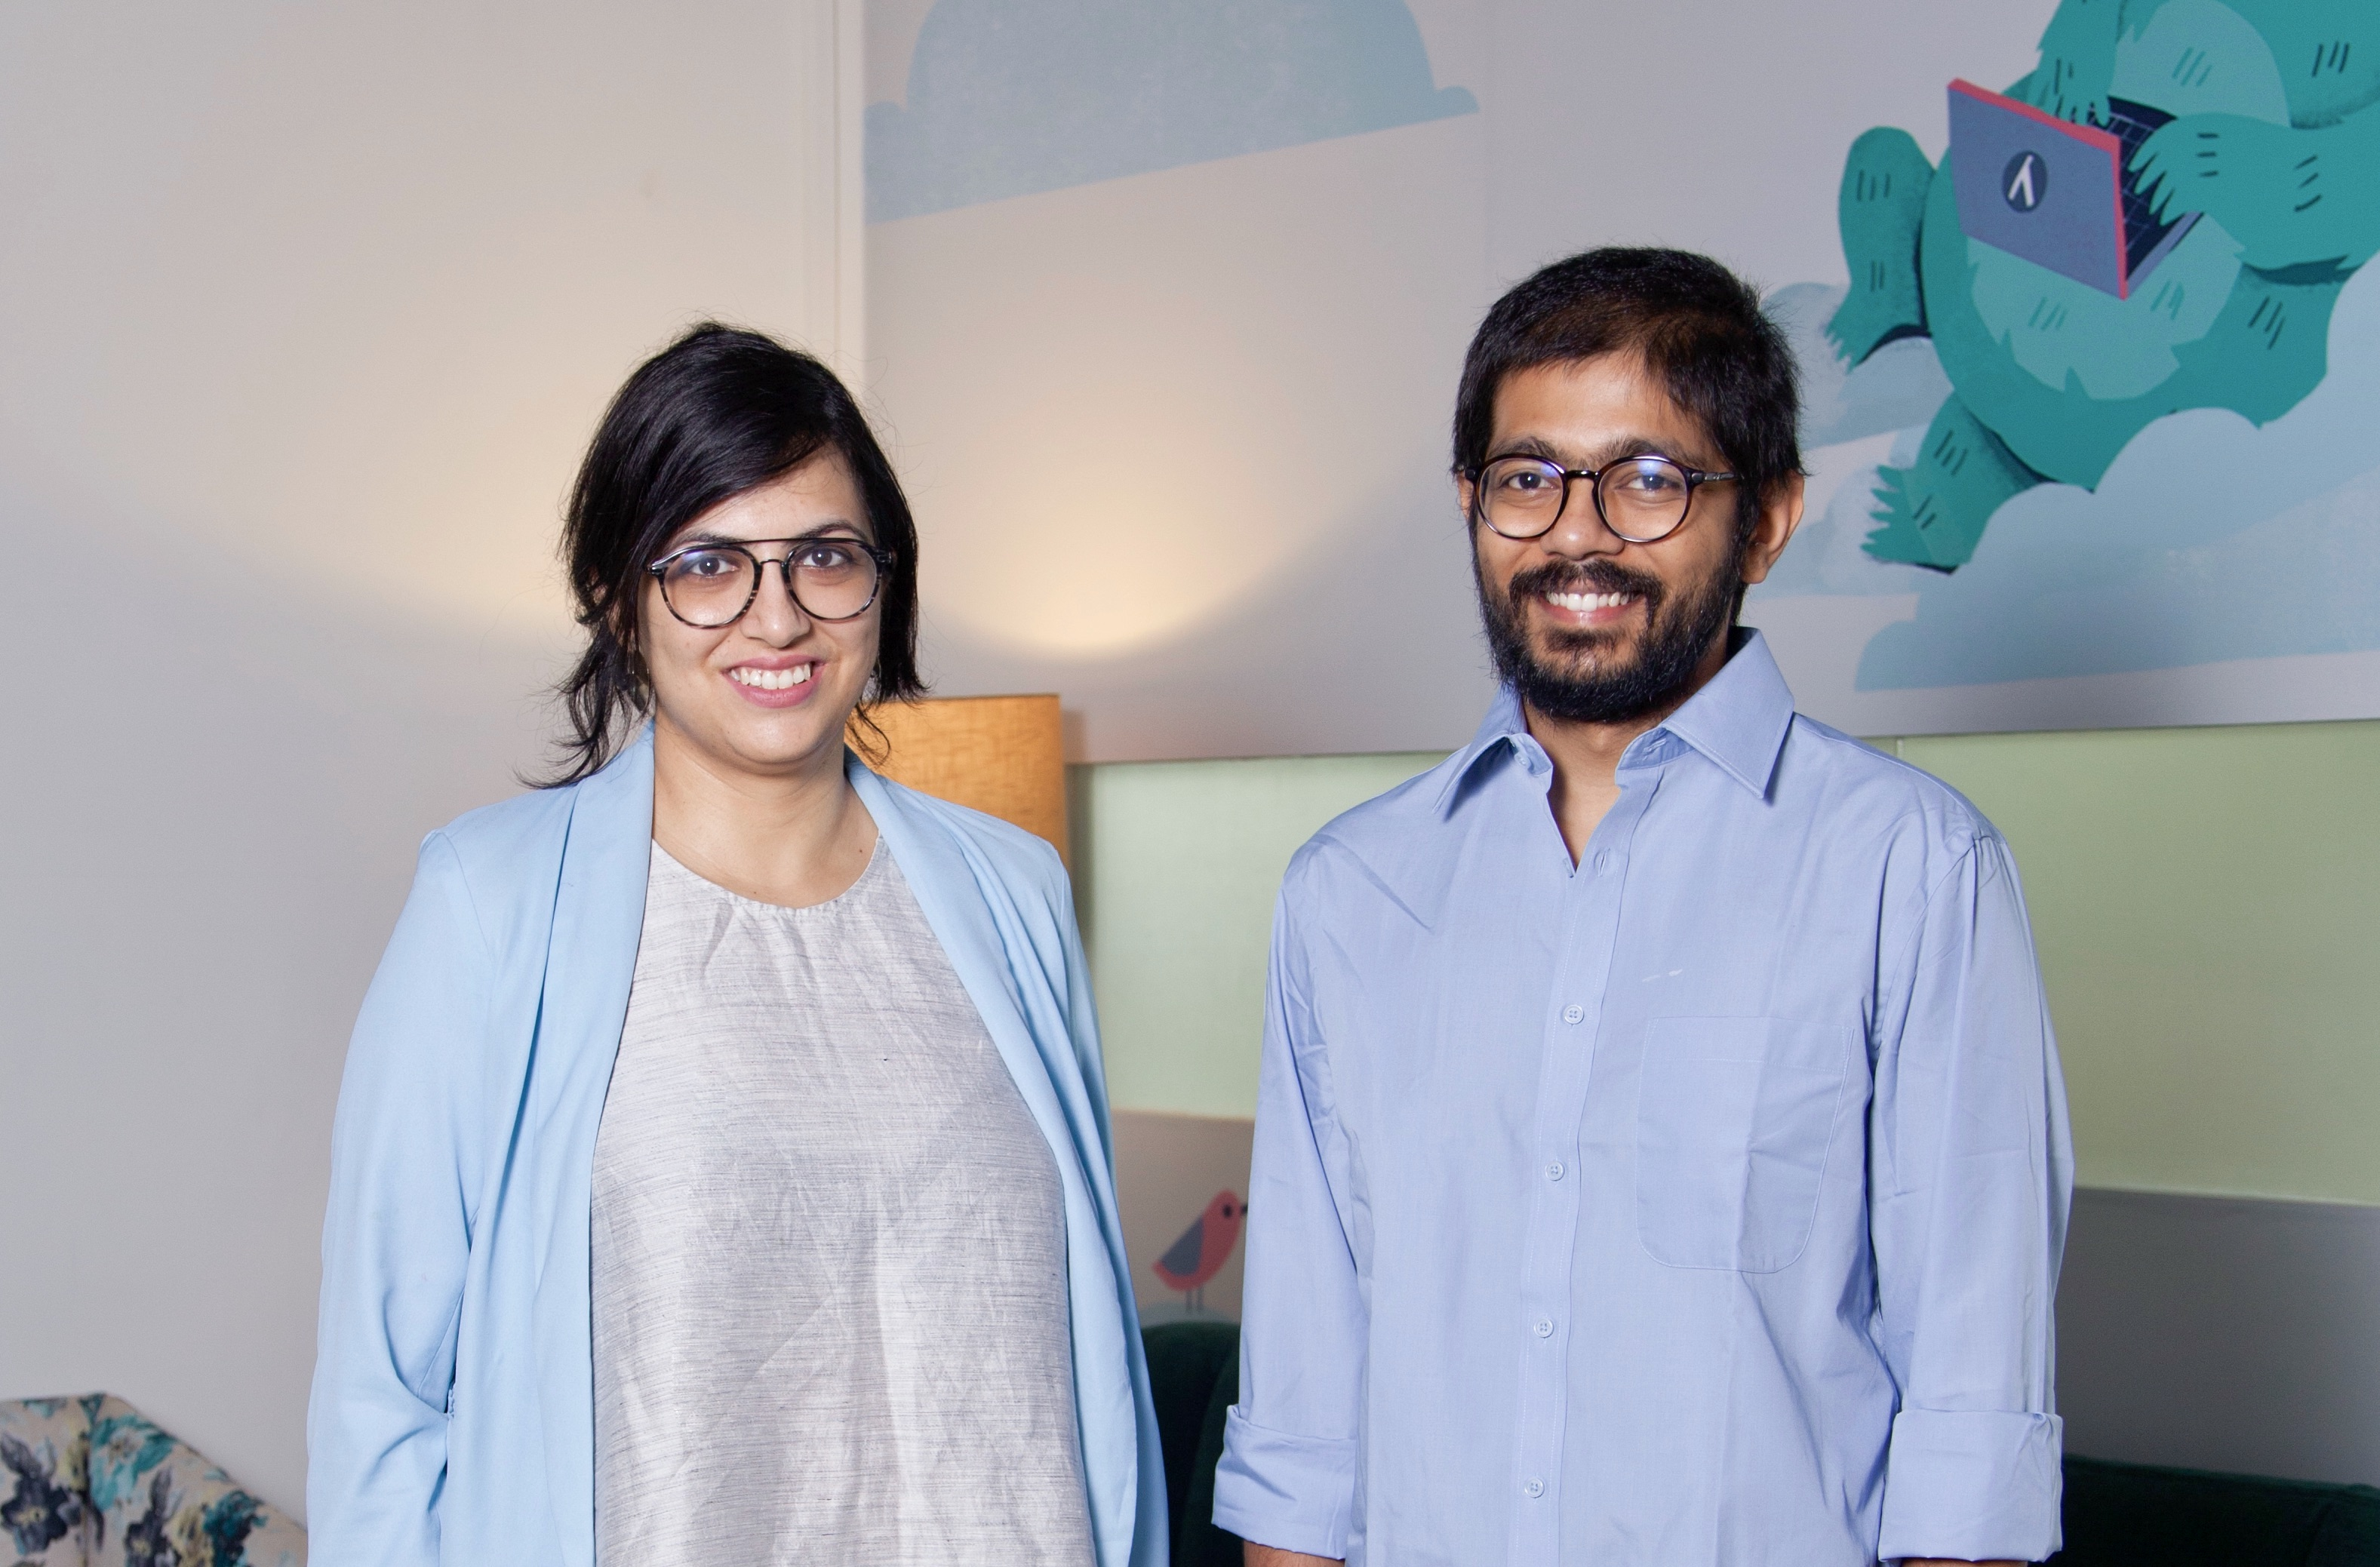 Rajoshi Ghosh, co-founder and COO (left) and Tanmai Gopal, co-founder and CEO (right).